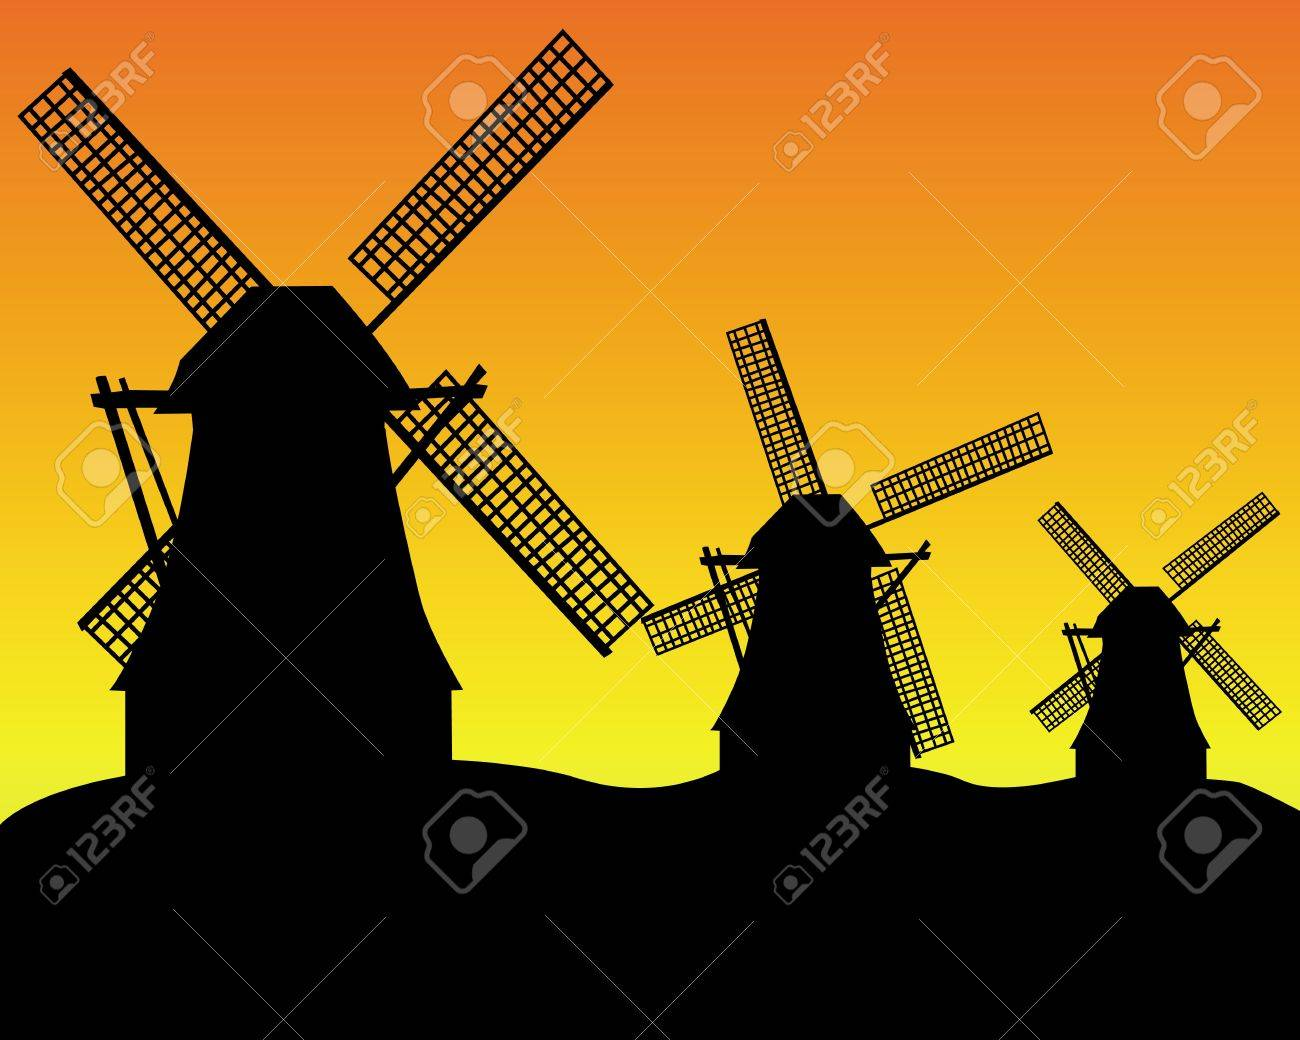 black silhouettes of three wind turbines on an orange background Stock Vector - 11787975